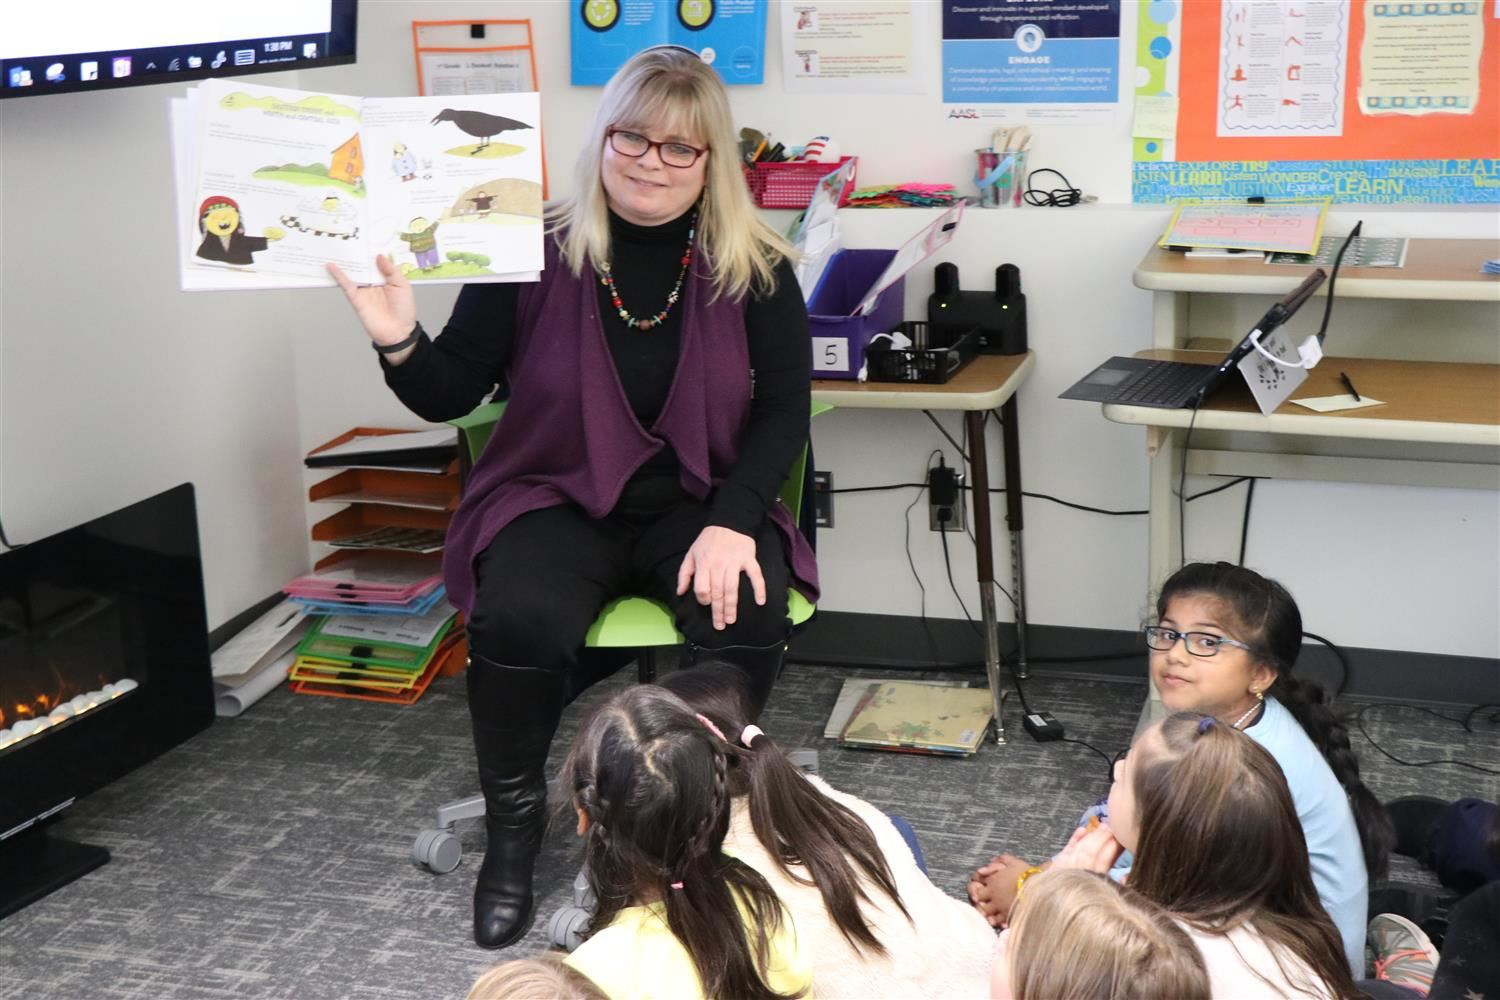 Principal Tiffany Kophs reads a book to students.